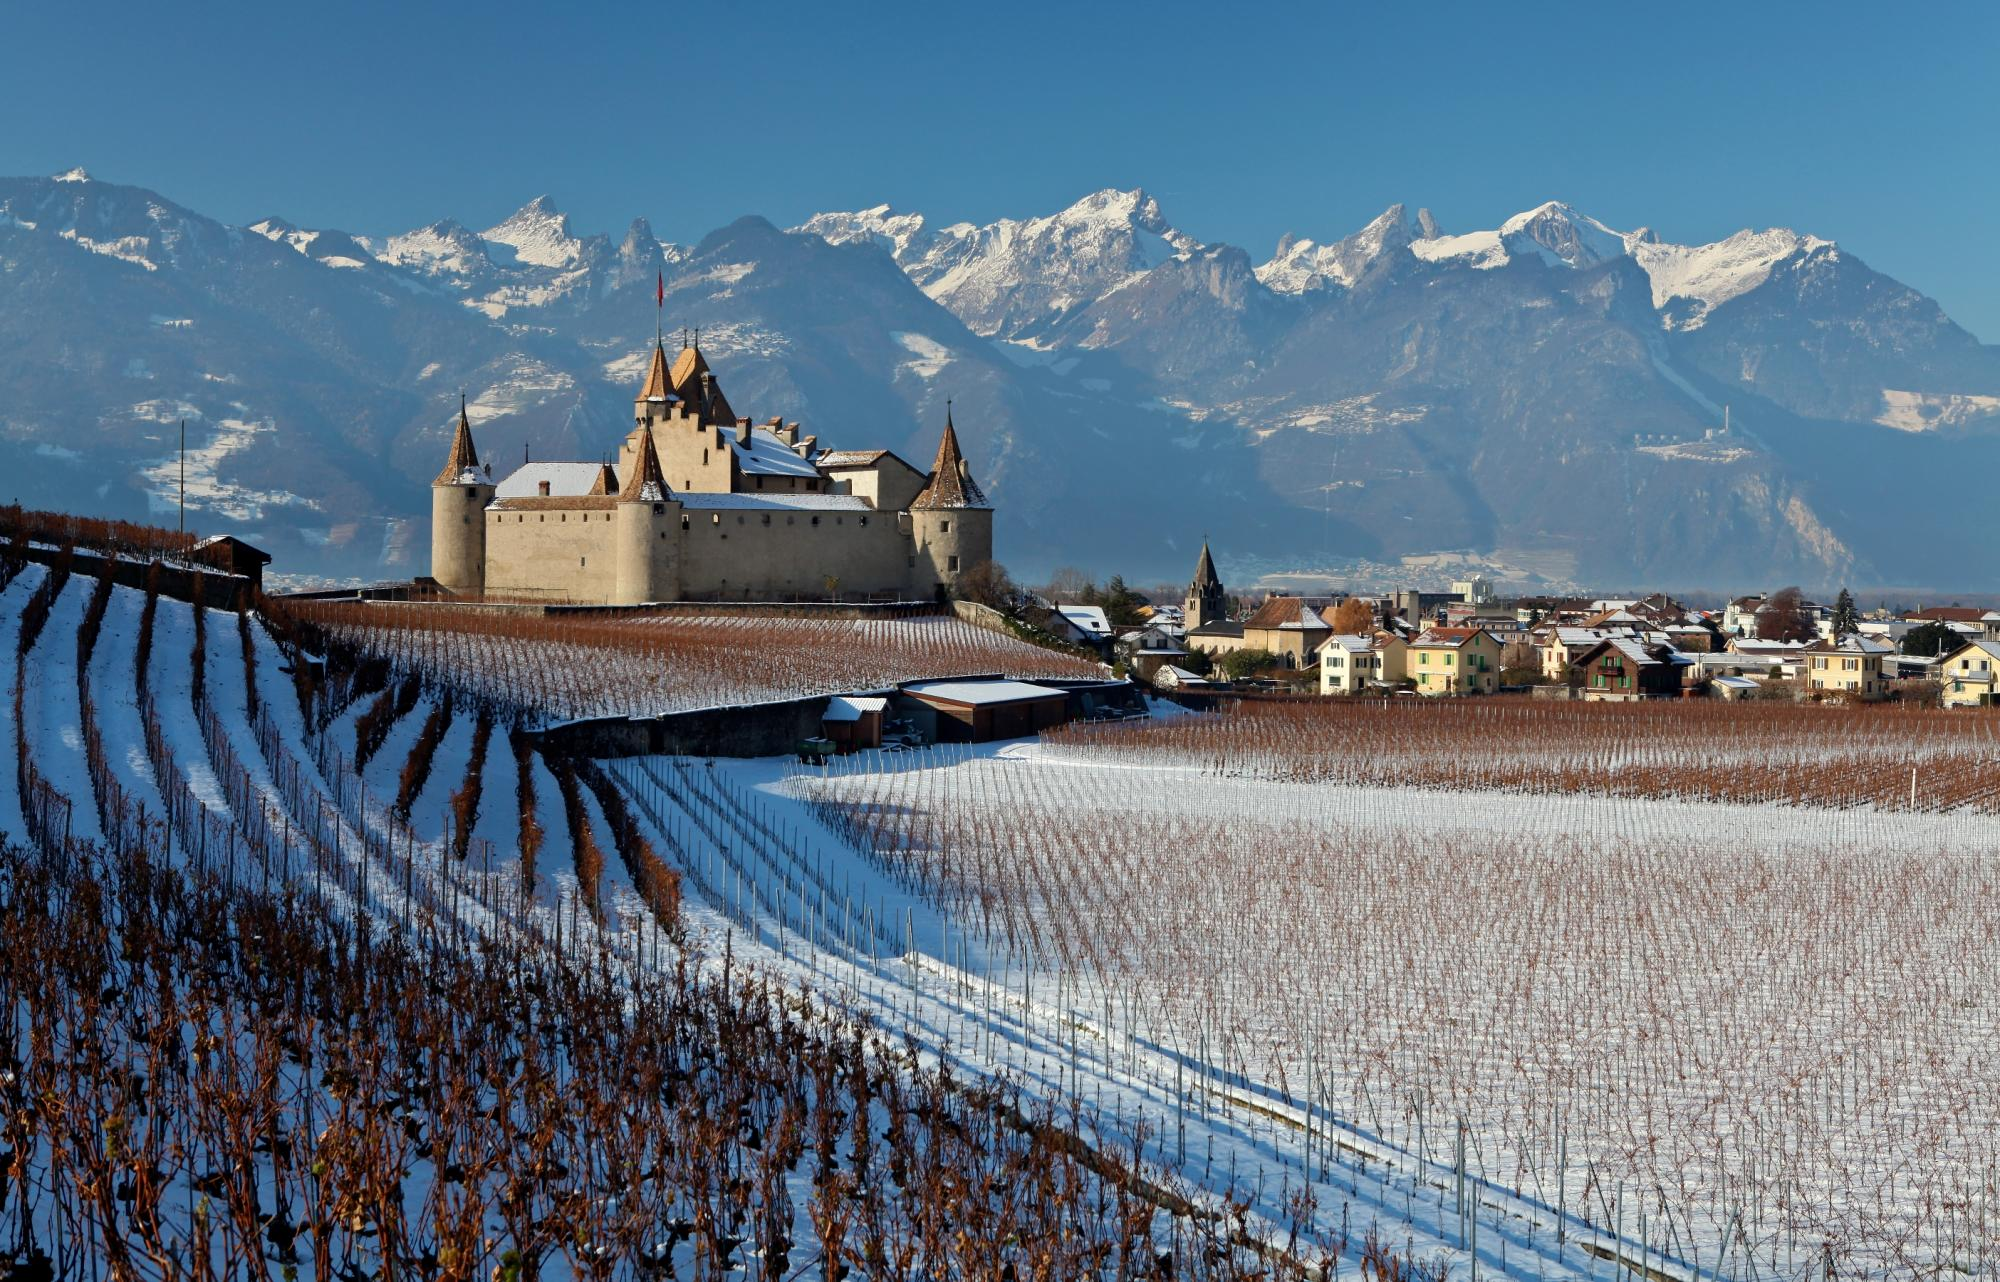 Château d'Aigle with vines - winter - Aigle